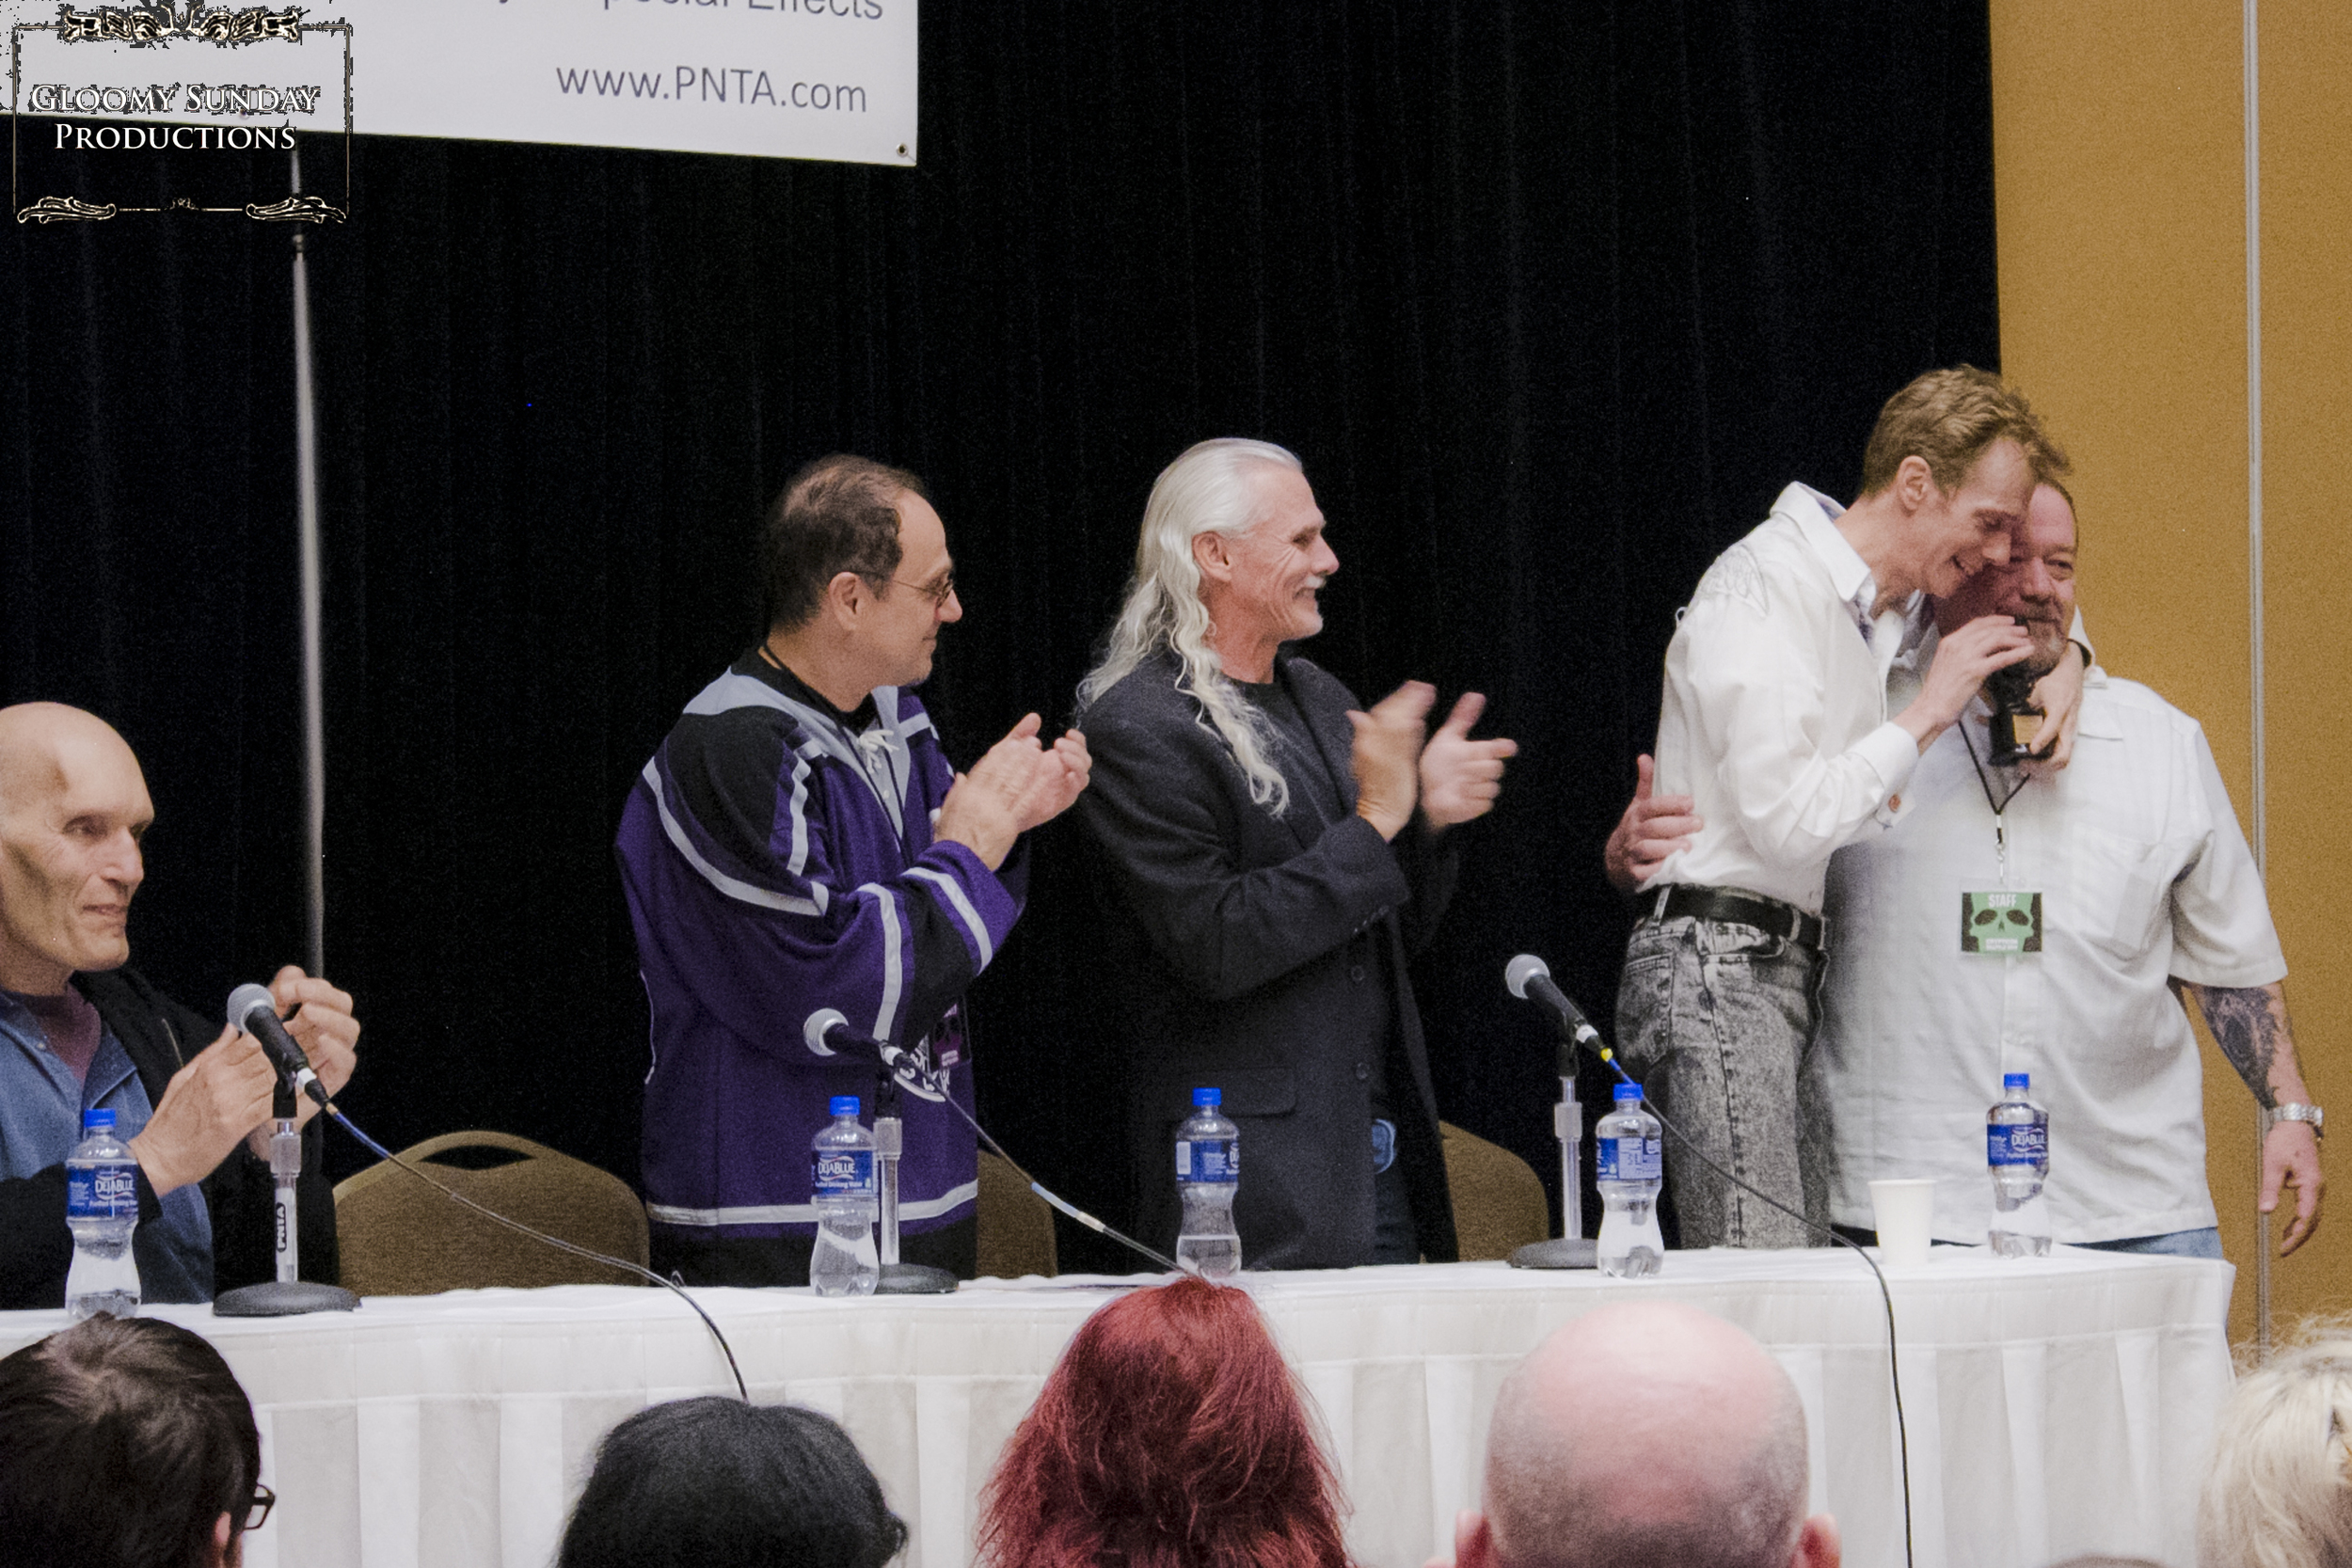 Doug Jones receiving the  Crypticon Icon Award  from resident sculptor William Bivens.